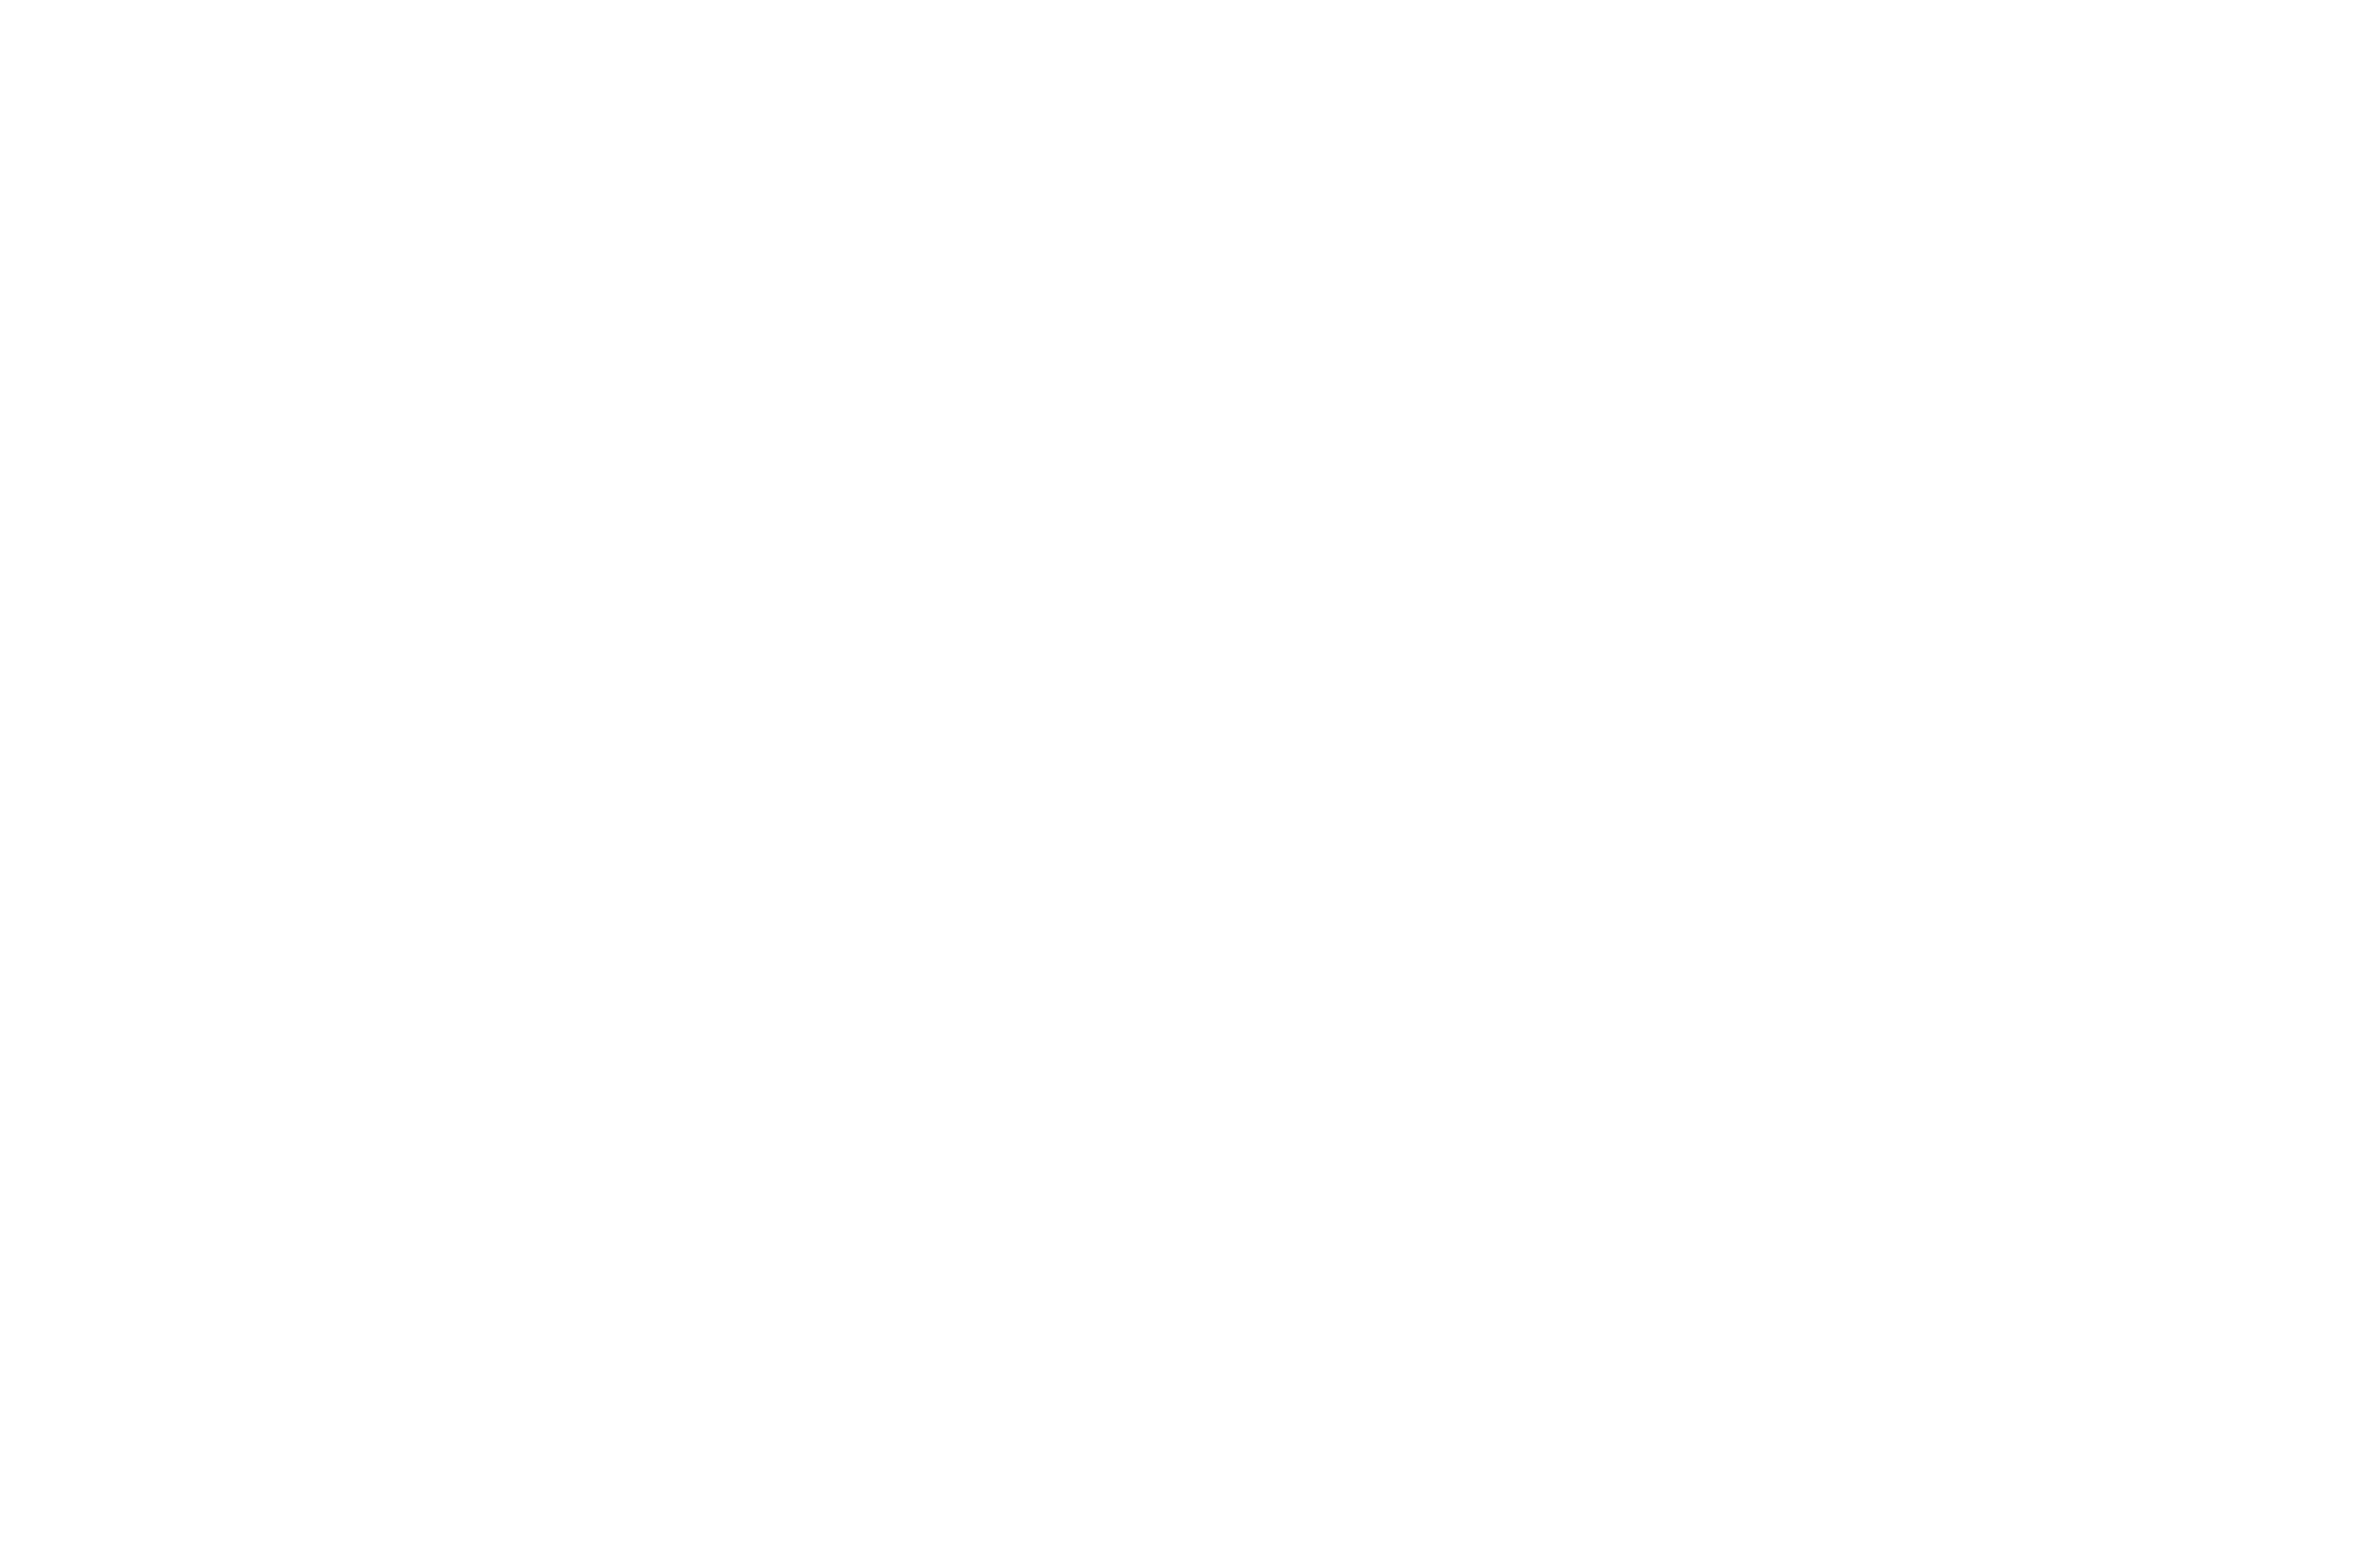 OFFICIALSELECTION-NorwichFilmFestival-2018-2.png